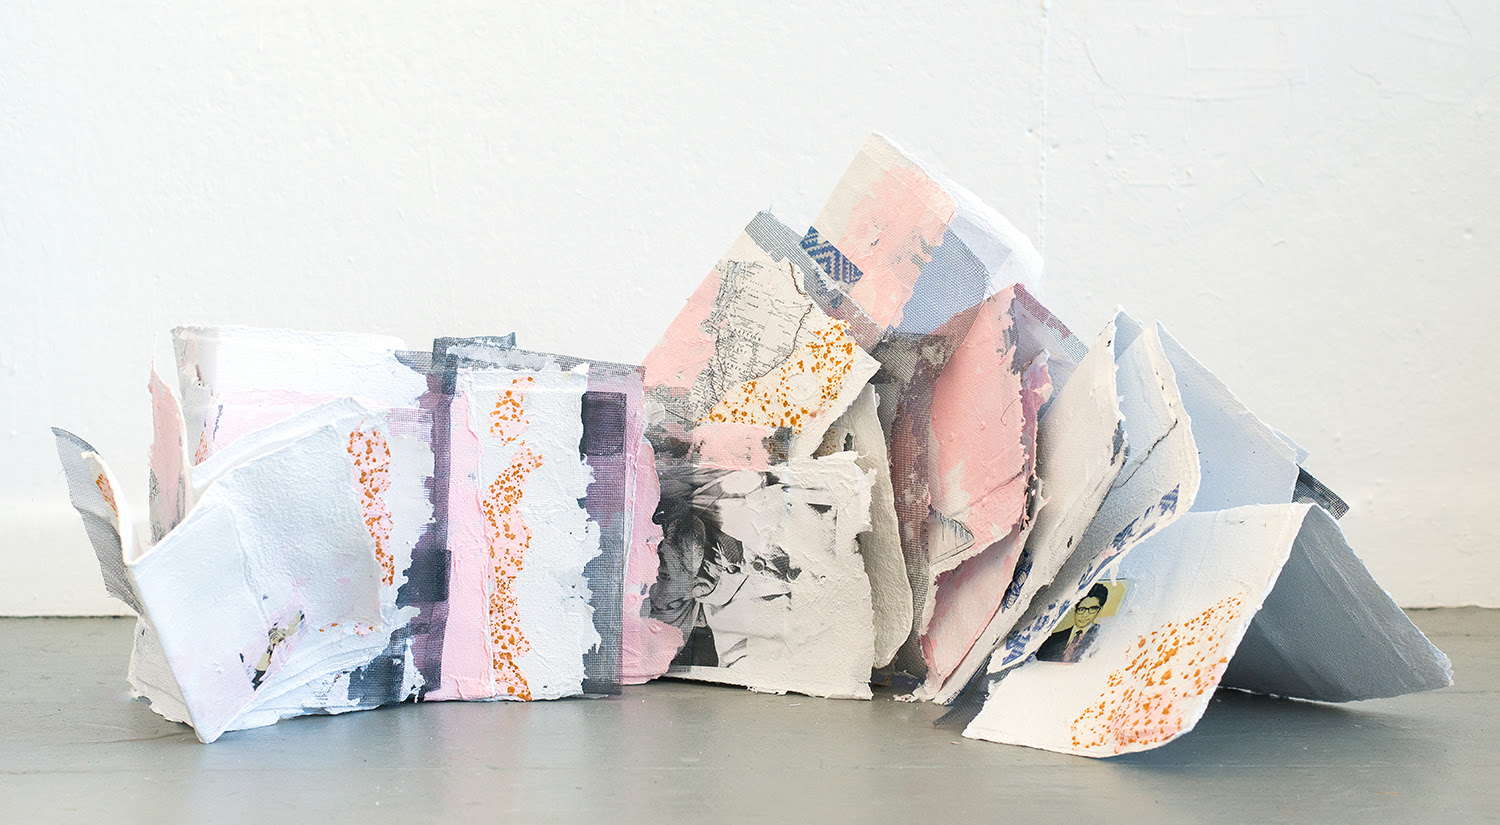 Tahir Carl Karmali .  PAPER:landscape , 2017. Handmade paper pulped from visa application documents, with transfer prints, xerox collage, aluminum mesh, and rust transfer. Installation dimensions variable. Courtesy the artist. © 2019 the artist.